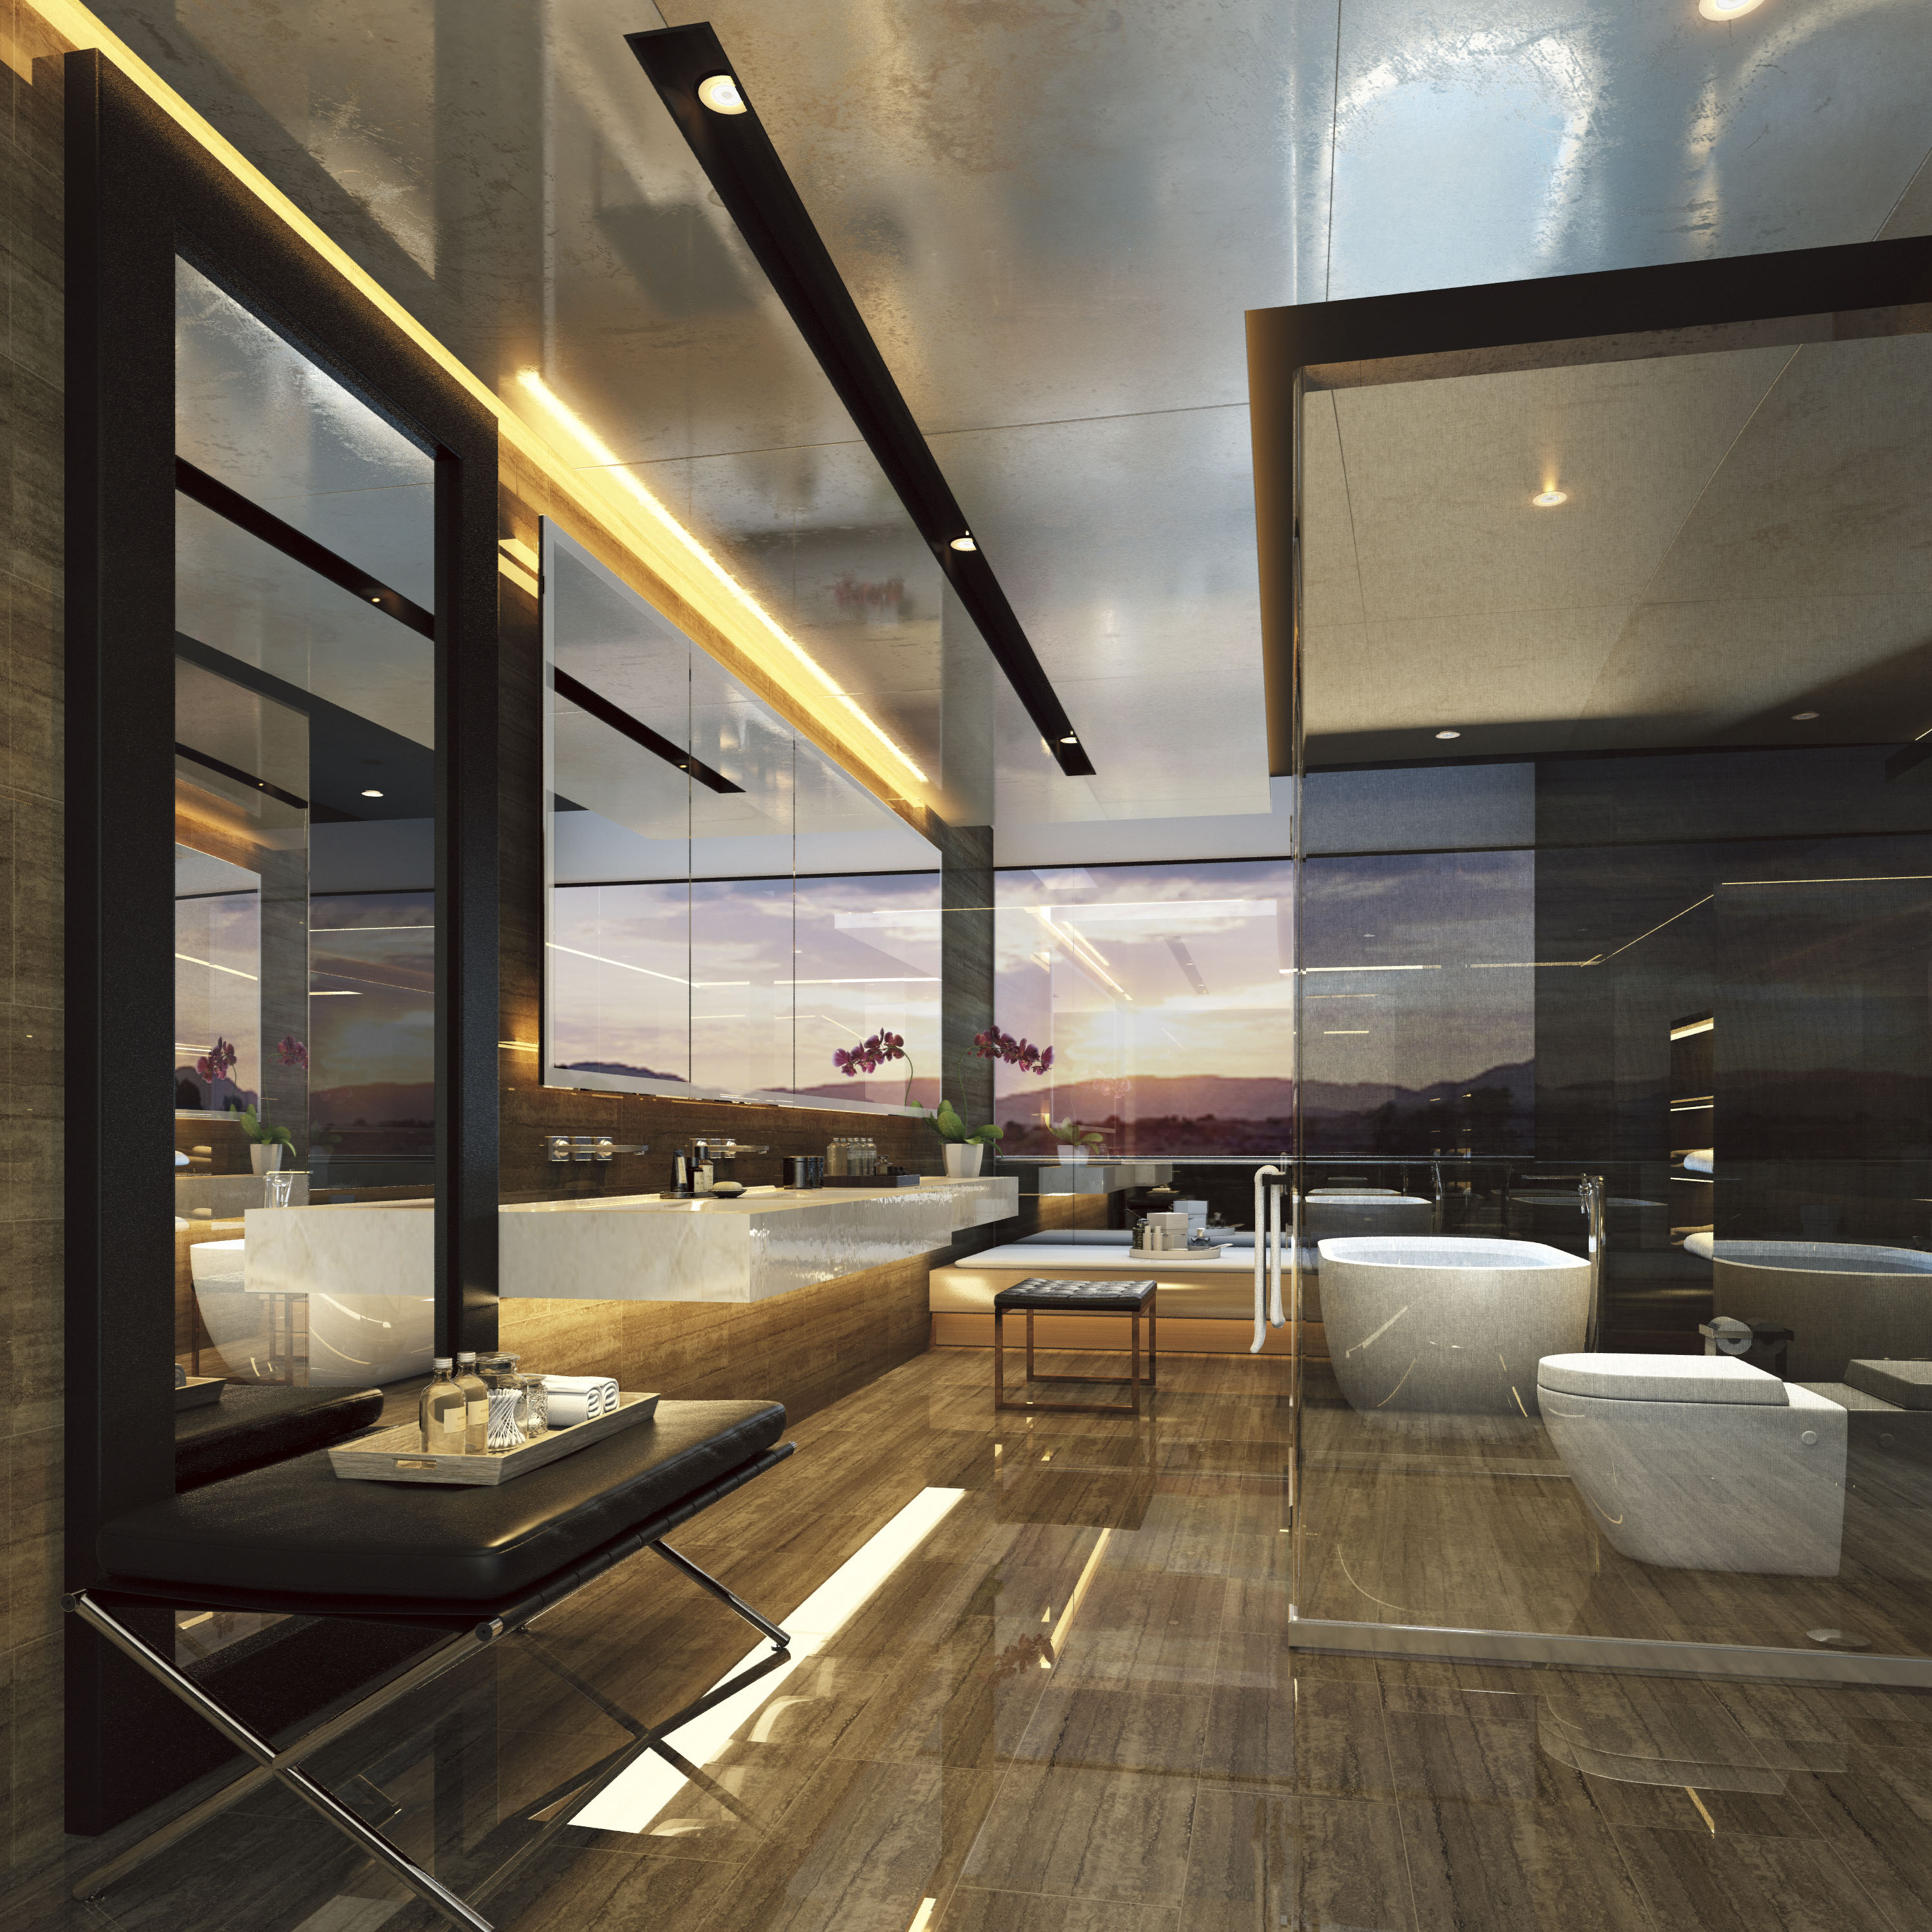 Scenic Eclipse - Owners Penthouse Suite Badezimmer